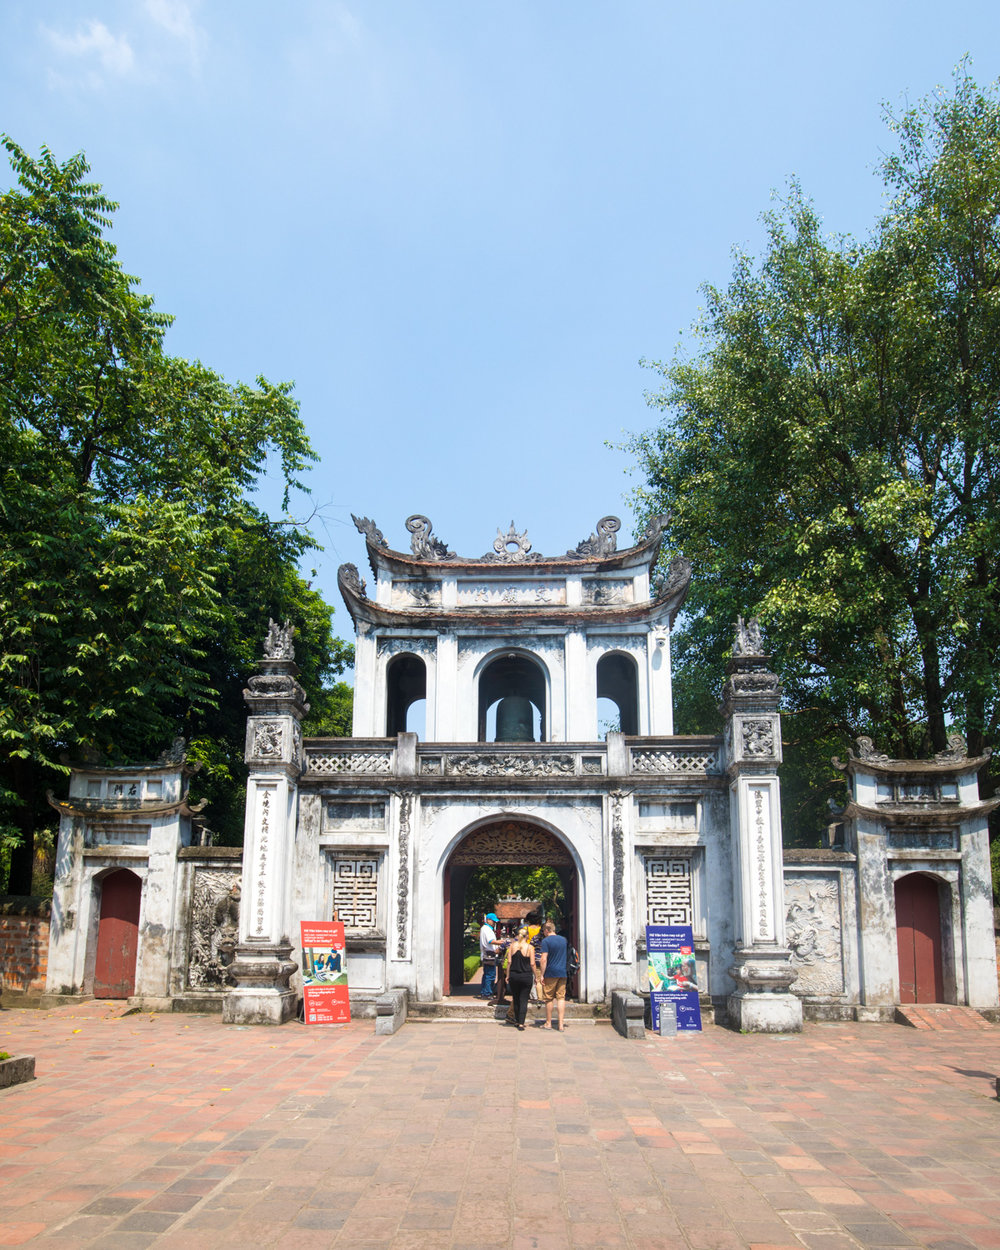 The Temple of Literature in Hanoi